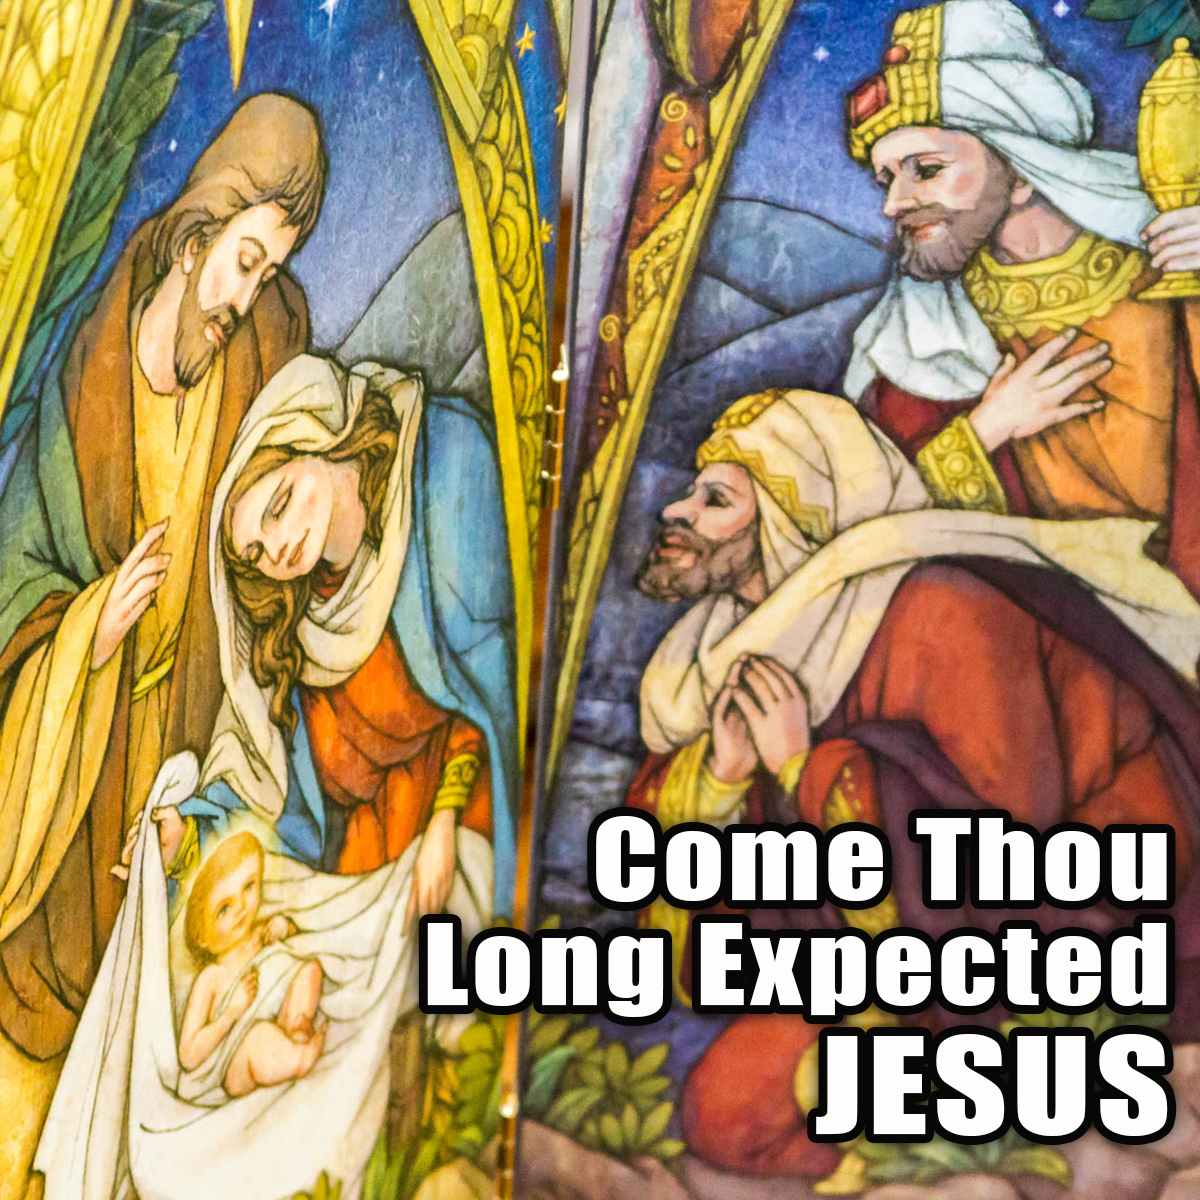 Come Thou Long Expected lyrics, a popular Advent hymn. Find sheeet music and lyrics